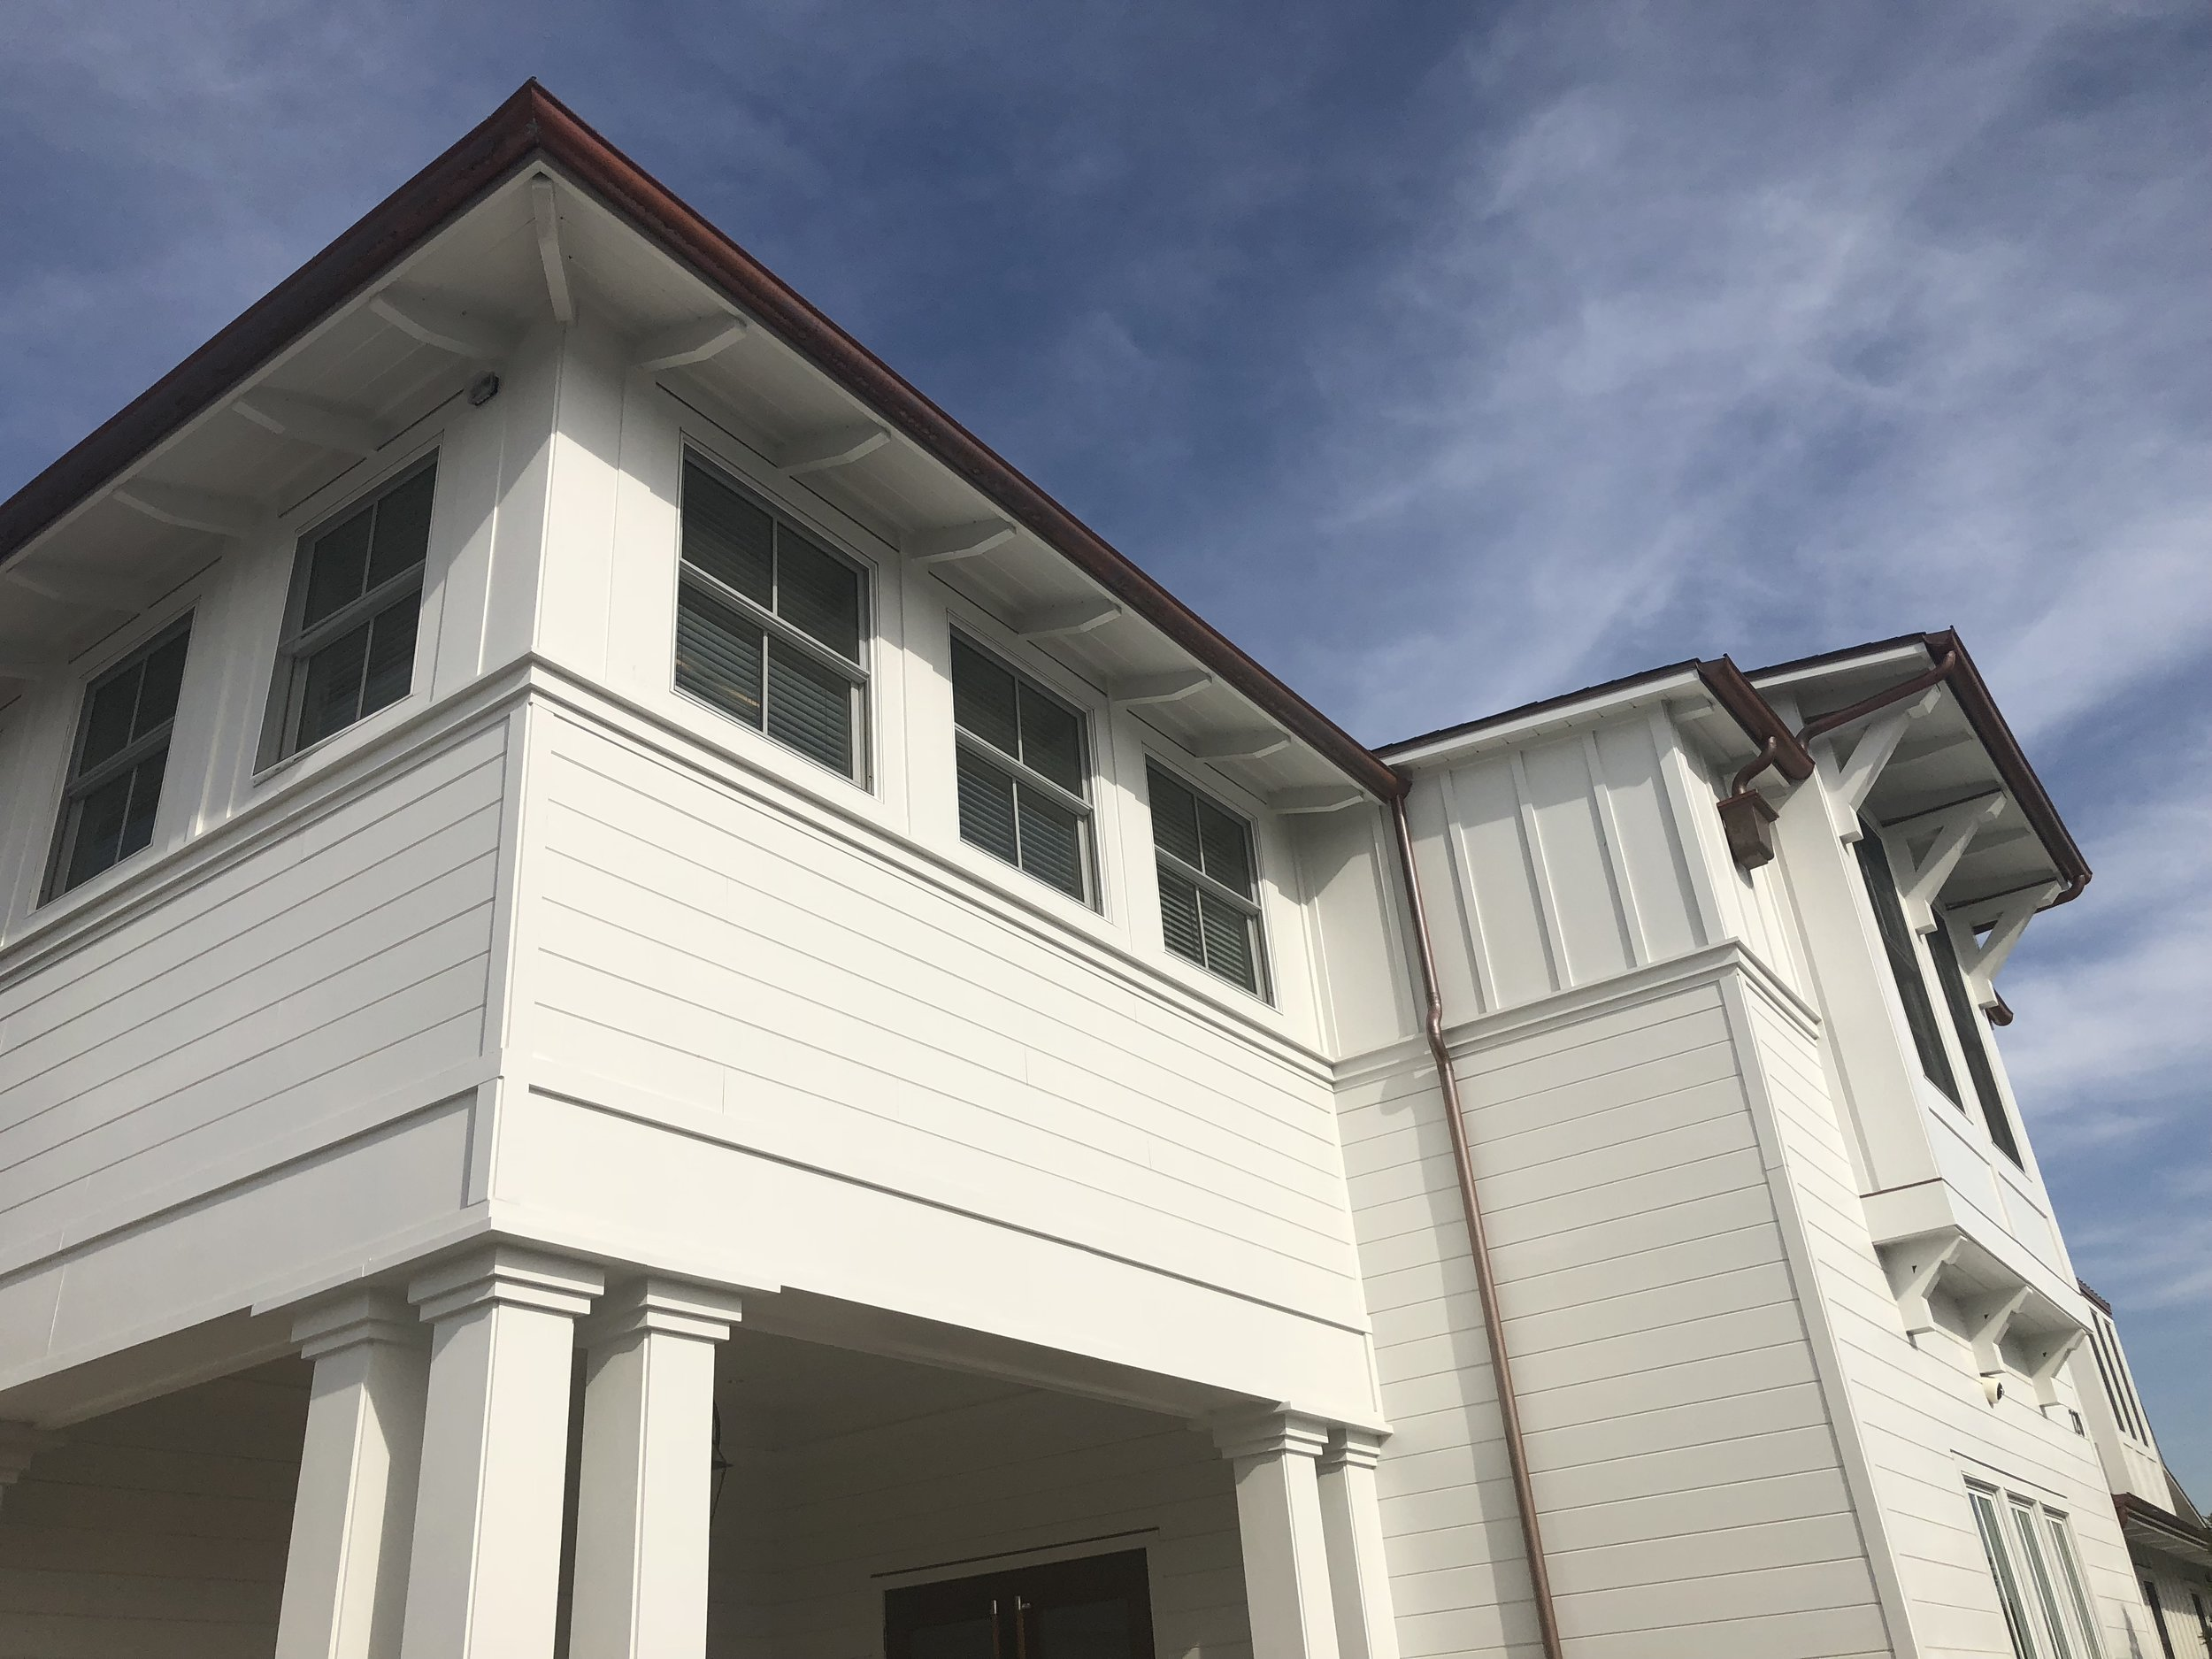 James Hardie Siding  Newport Harbor Yacht Club, Newport Beach, Ca